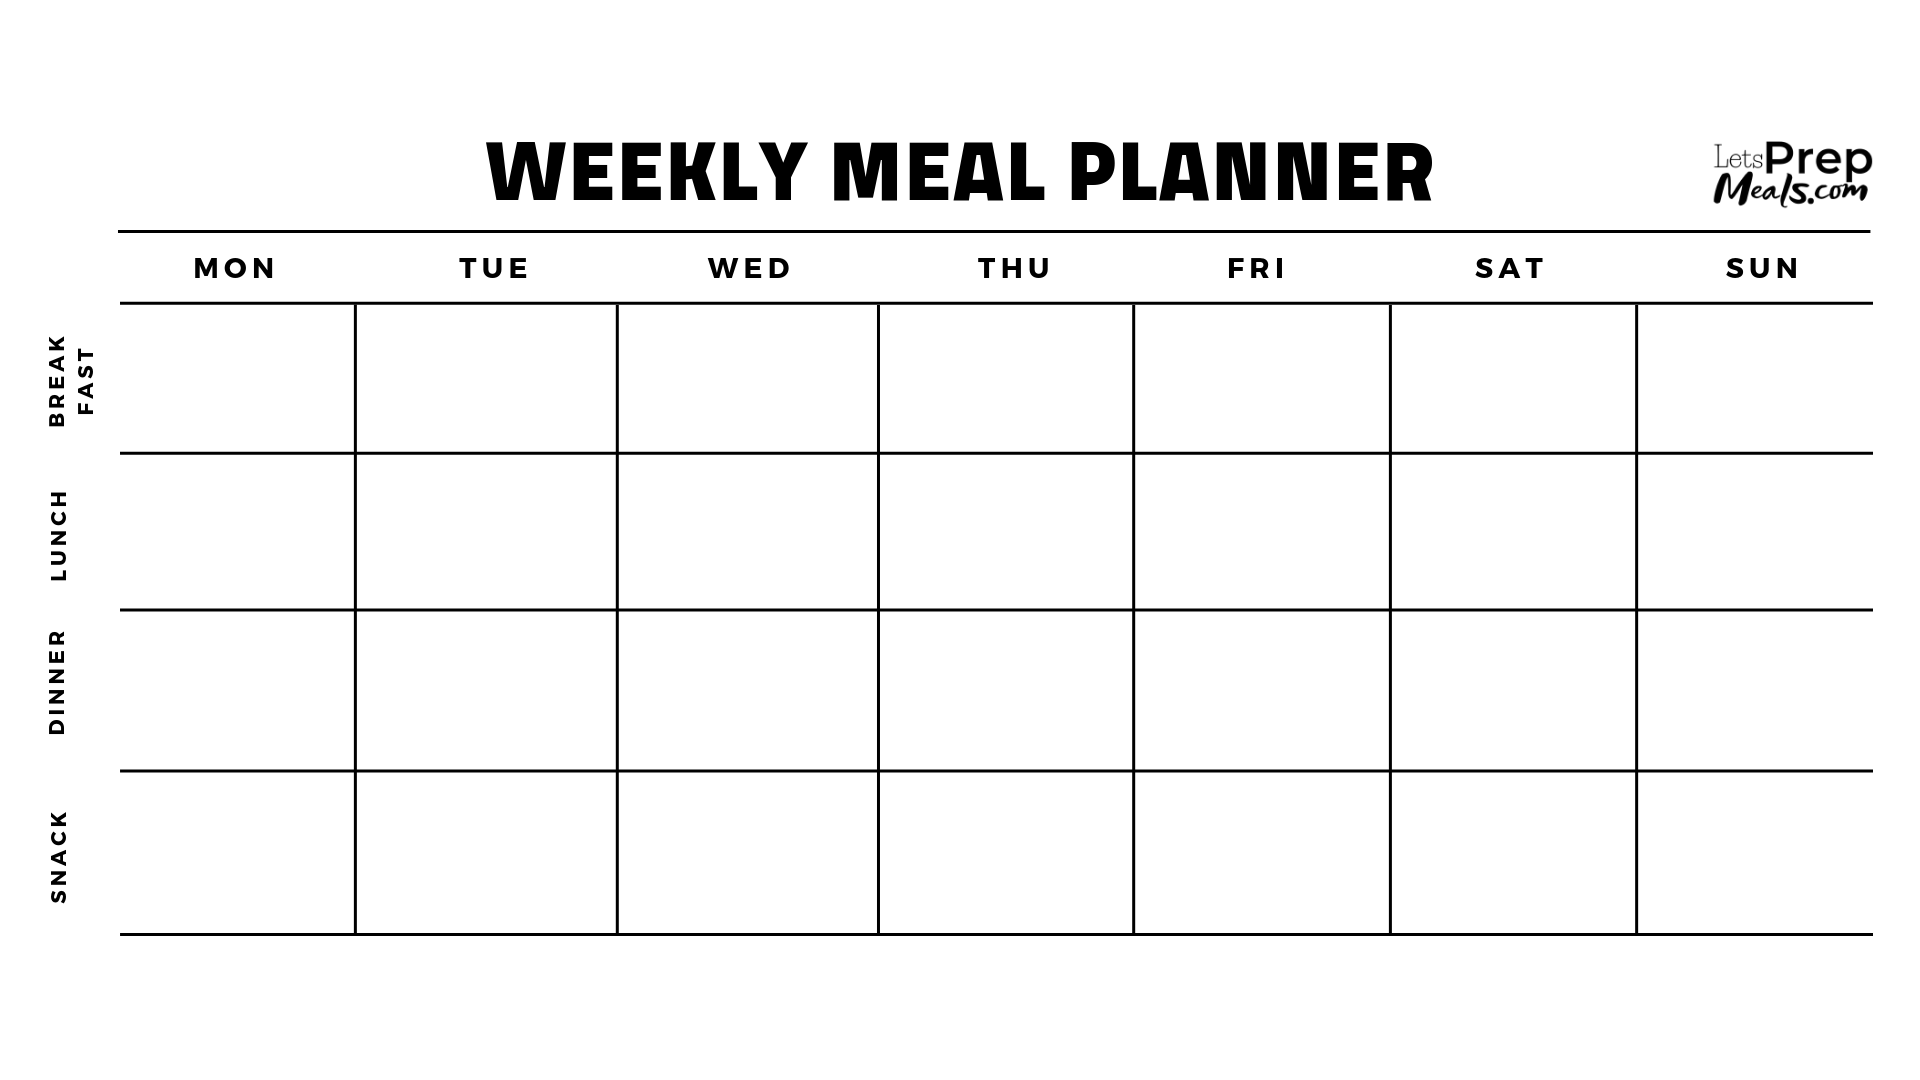 LetsPrepMeals.com - Weekly Meal Planner bw